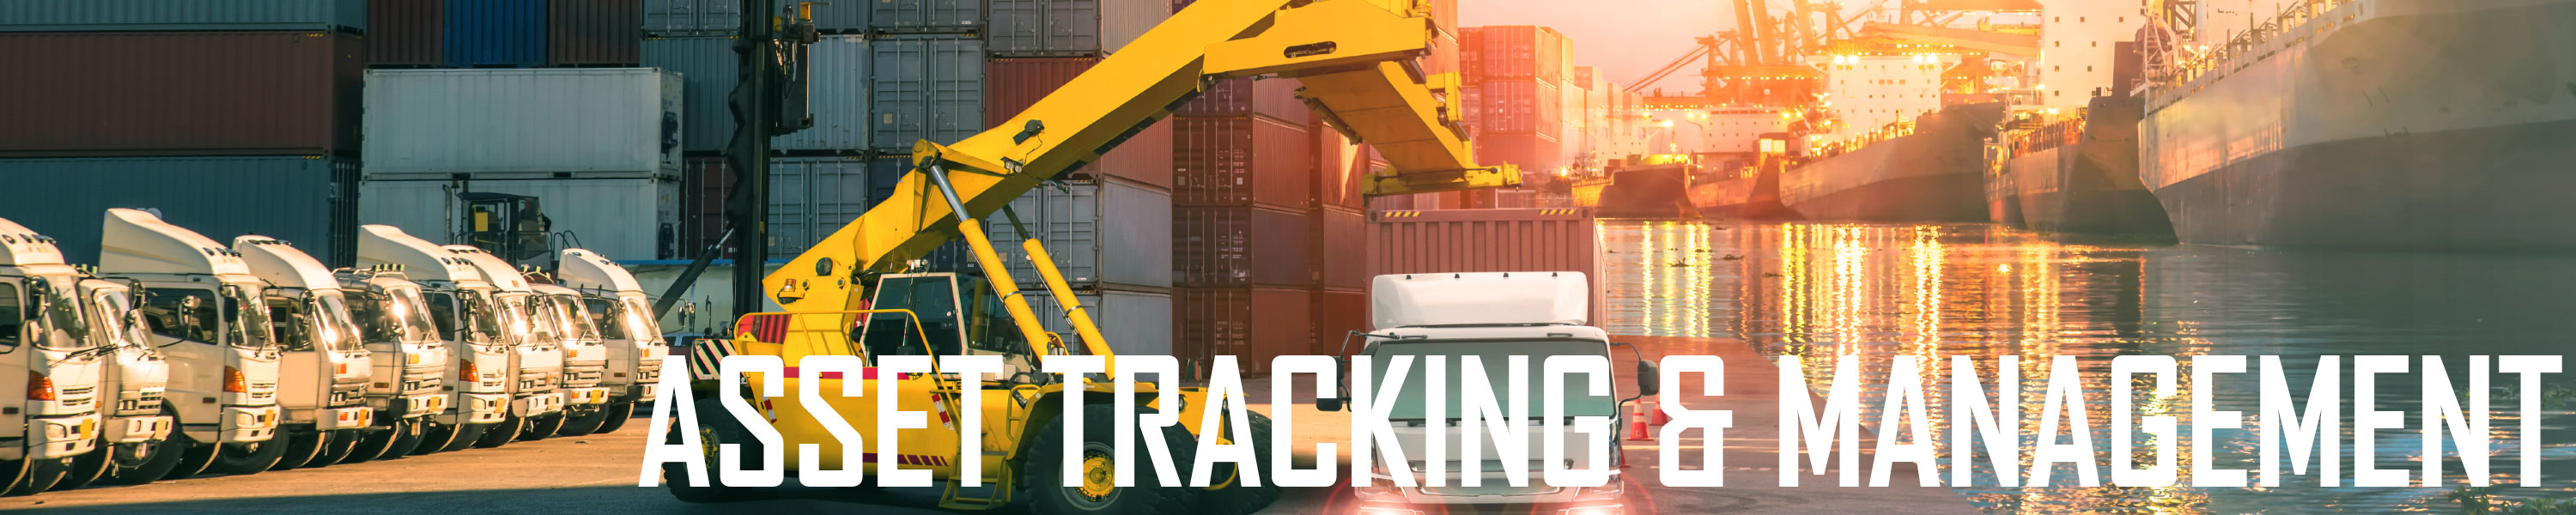 Asset Tracking & Management